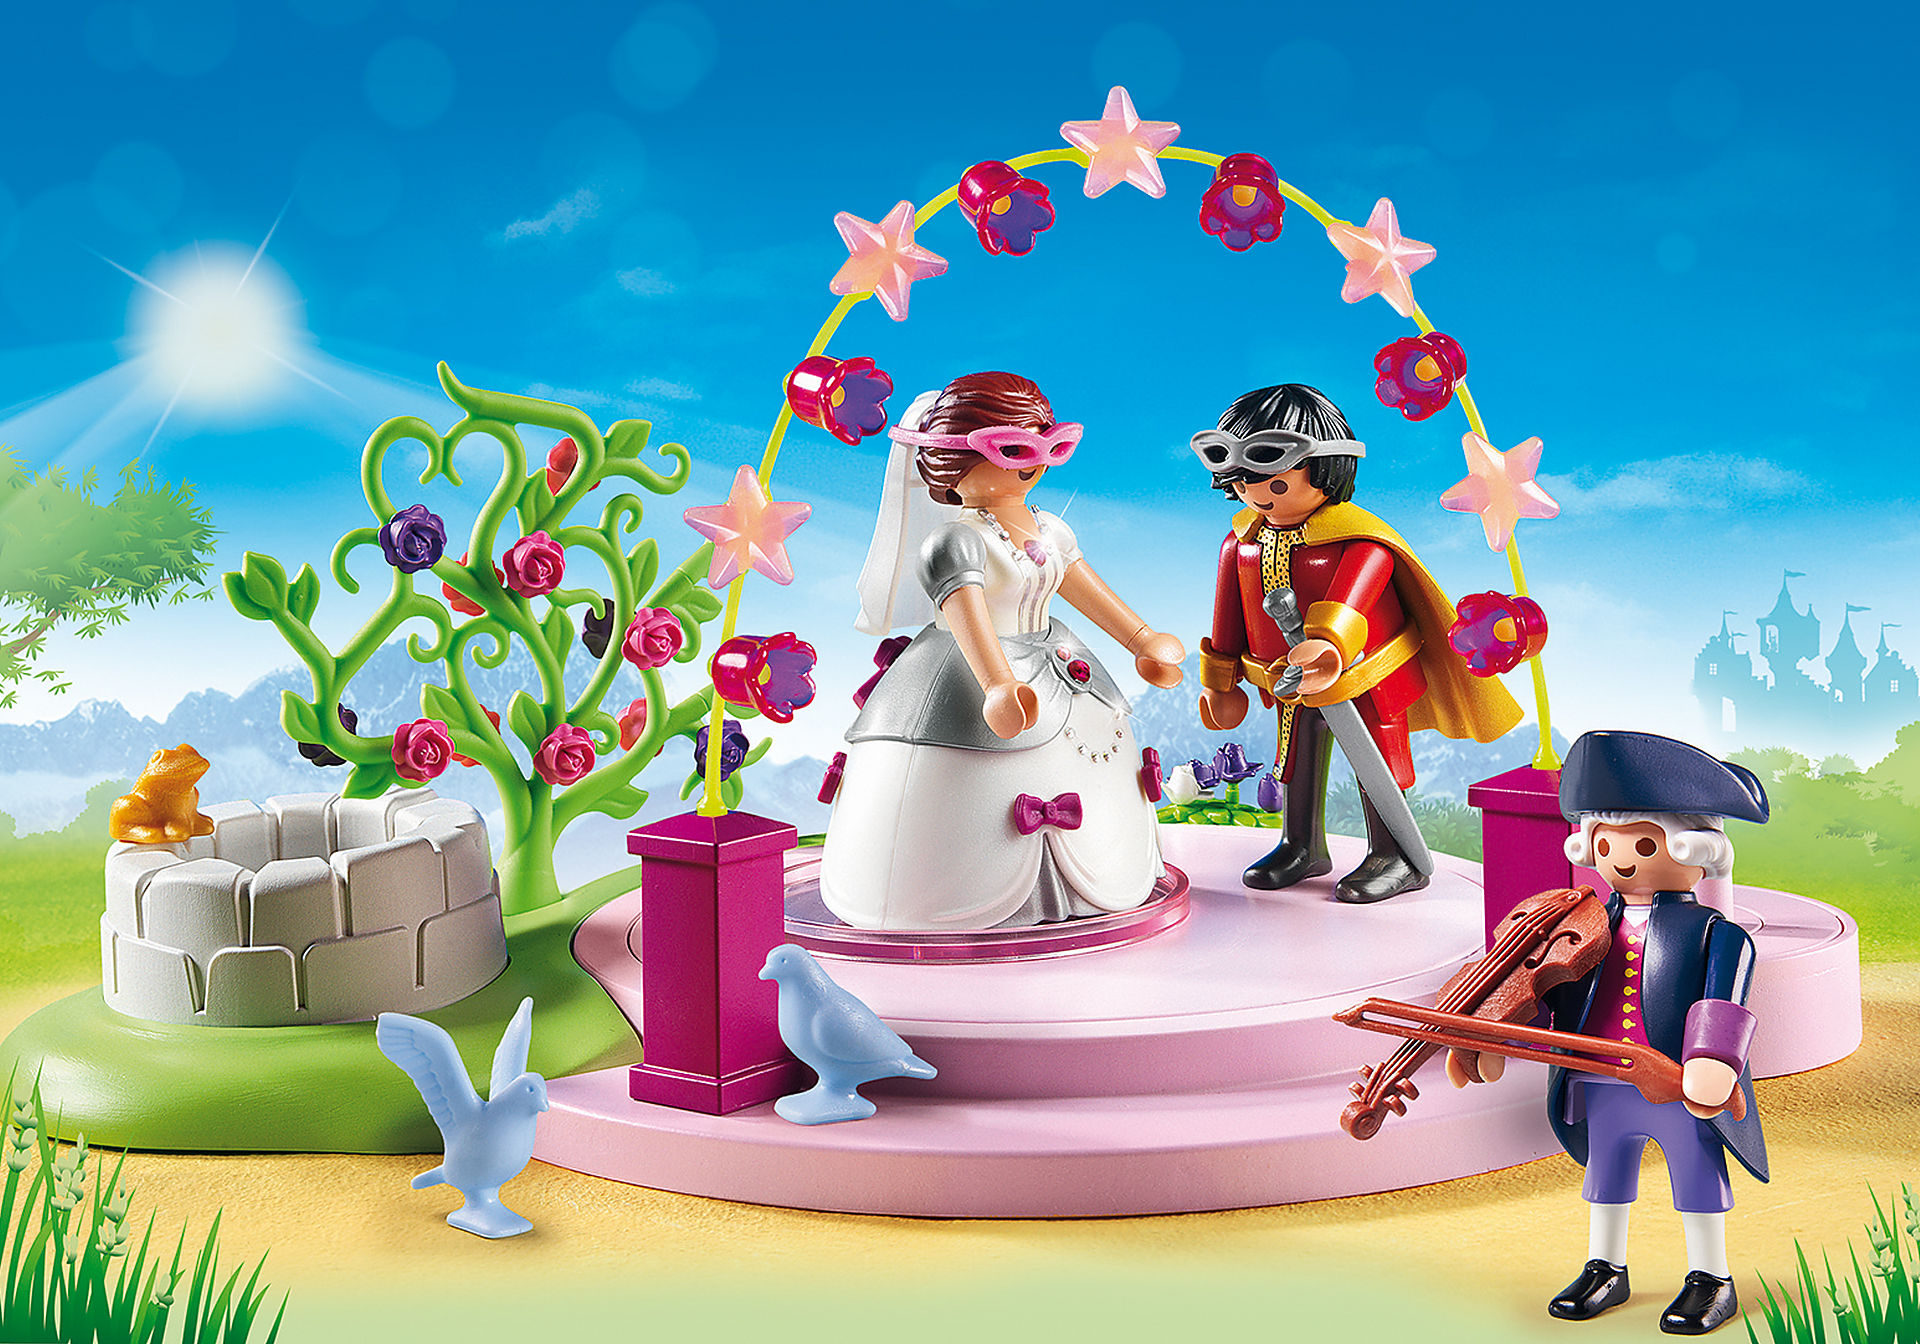 http://media.playmobil.com/i/playmobil/6853_product_detail/Couple princier masqué